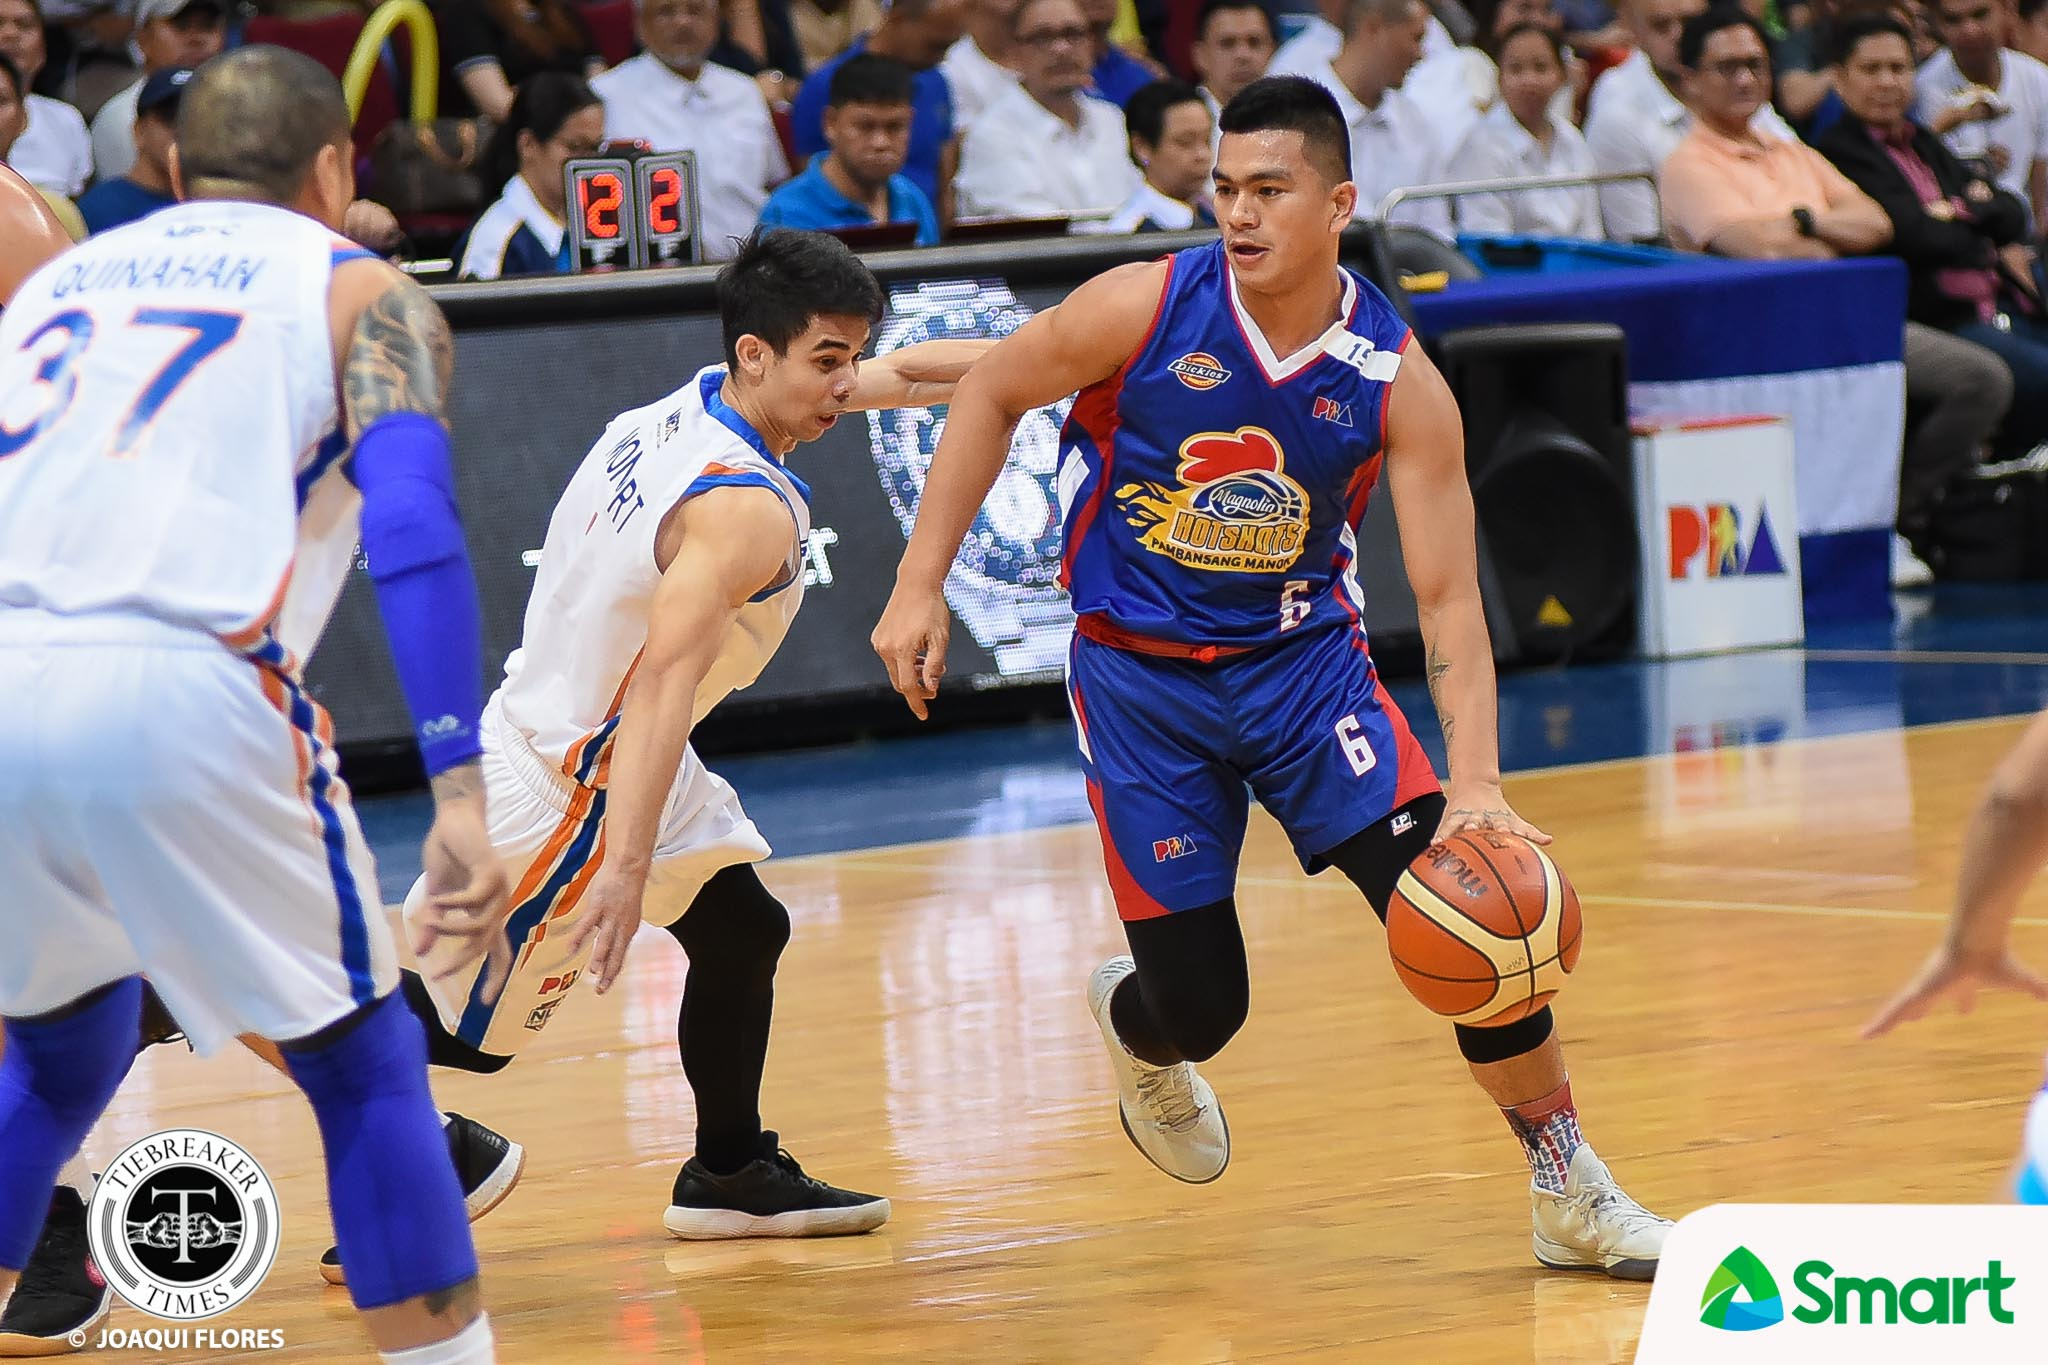 Tiebreaker Times Jio Jalalon requested to defend Kiefer Ravena Basketball News PBA  PBA Season 43 Magnolia Hotshots Kiefer Ravena Jio Jalalon 2017-18 PBA Philippine Cup